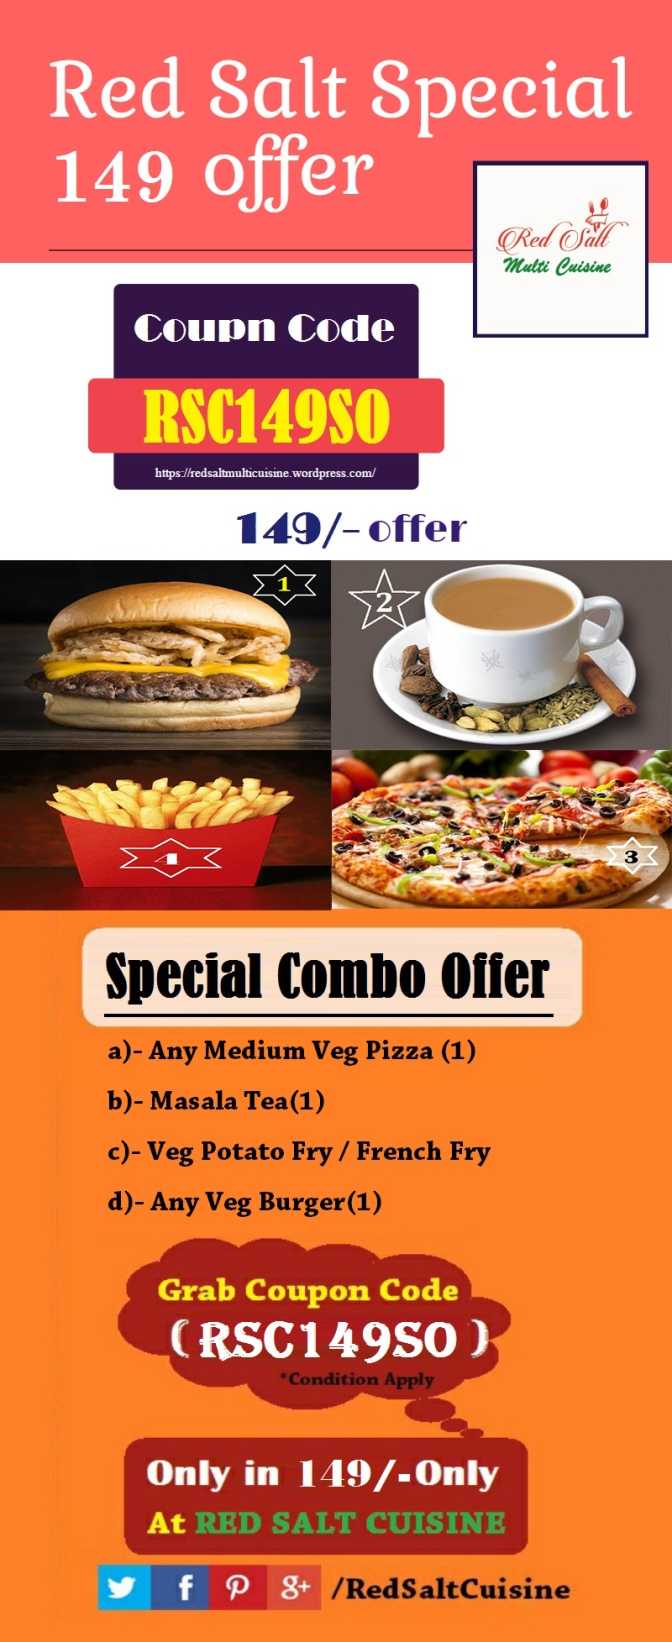 Special Combo Offer 149 only.jpg